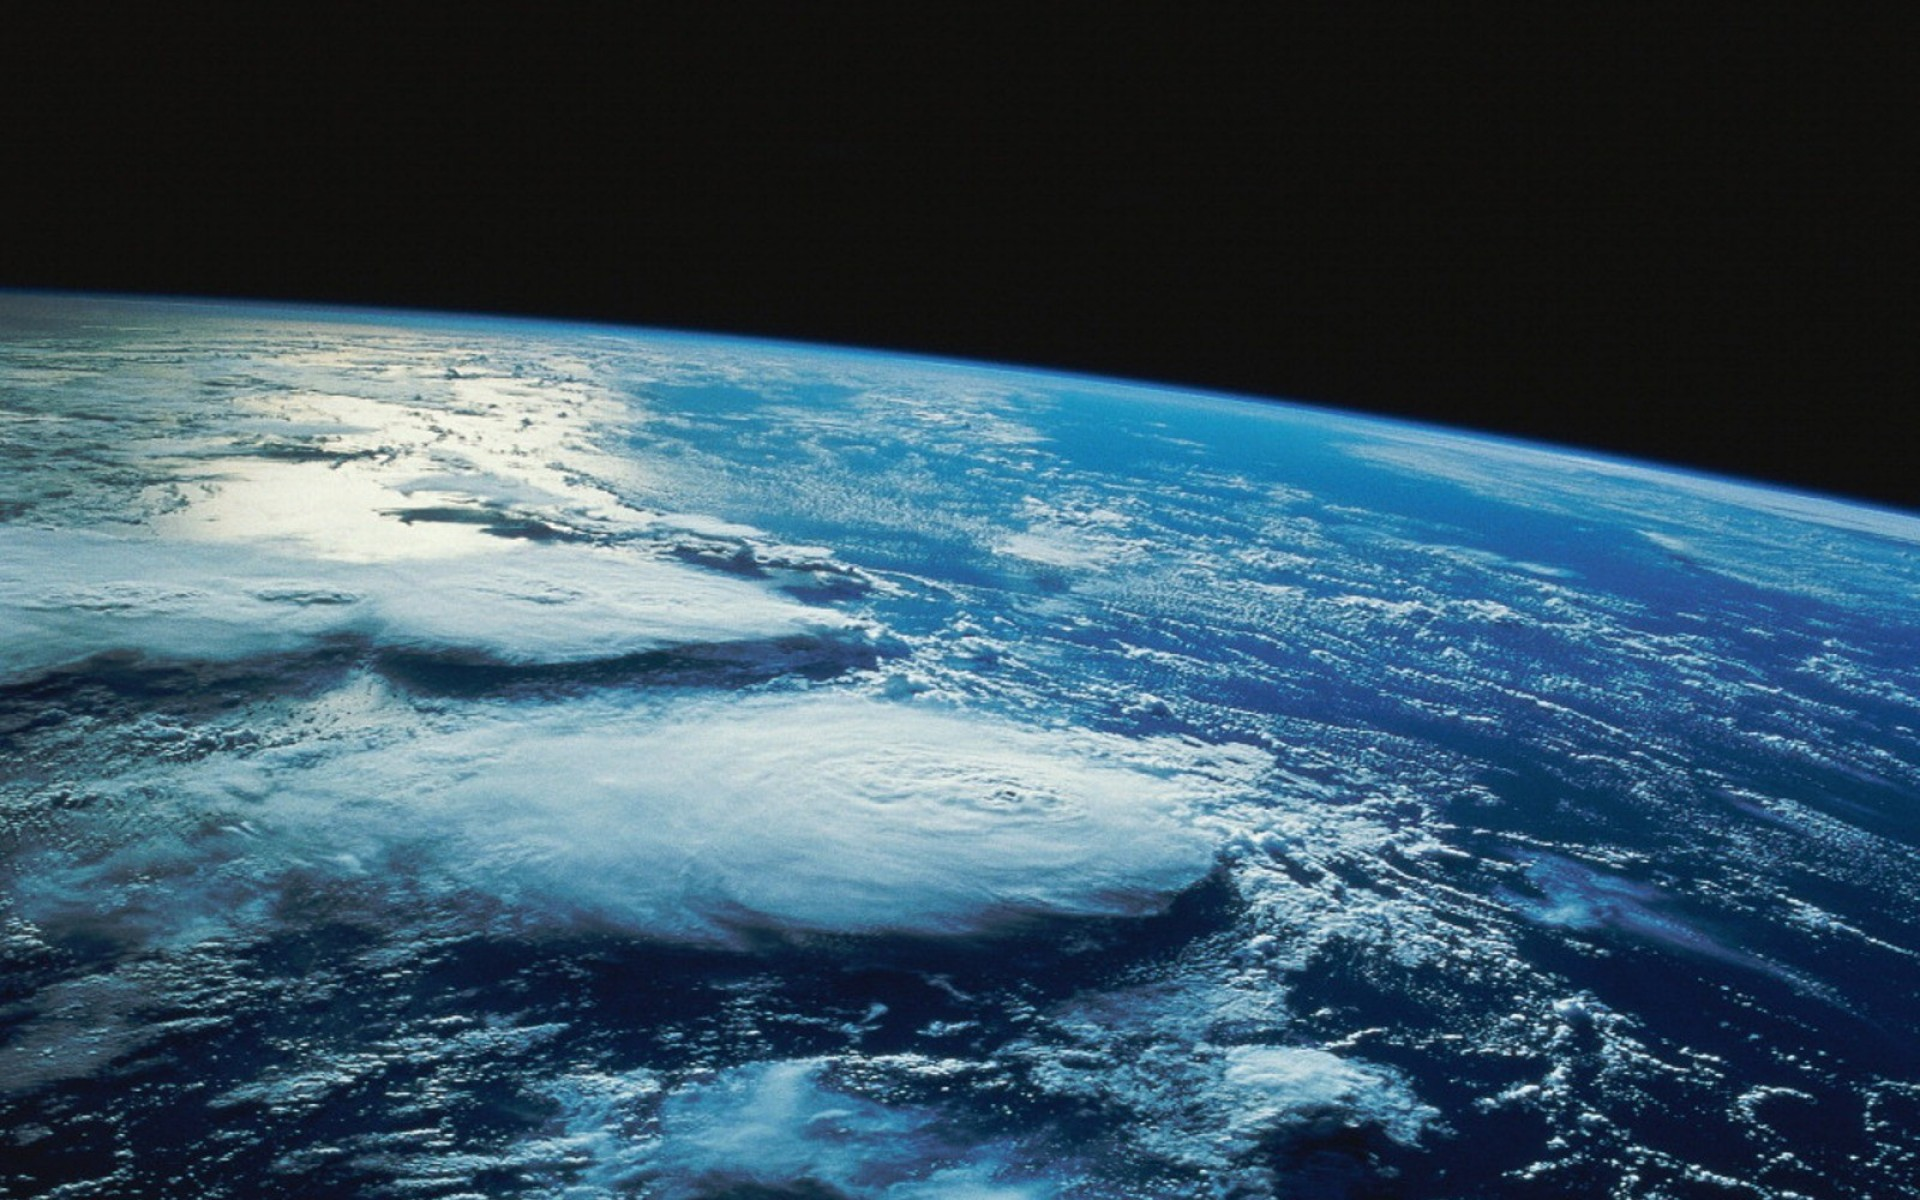 Earth From Space Wallpaper Hd Wallpapers Backgrounds Of Your